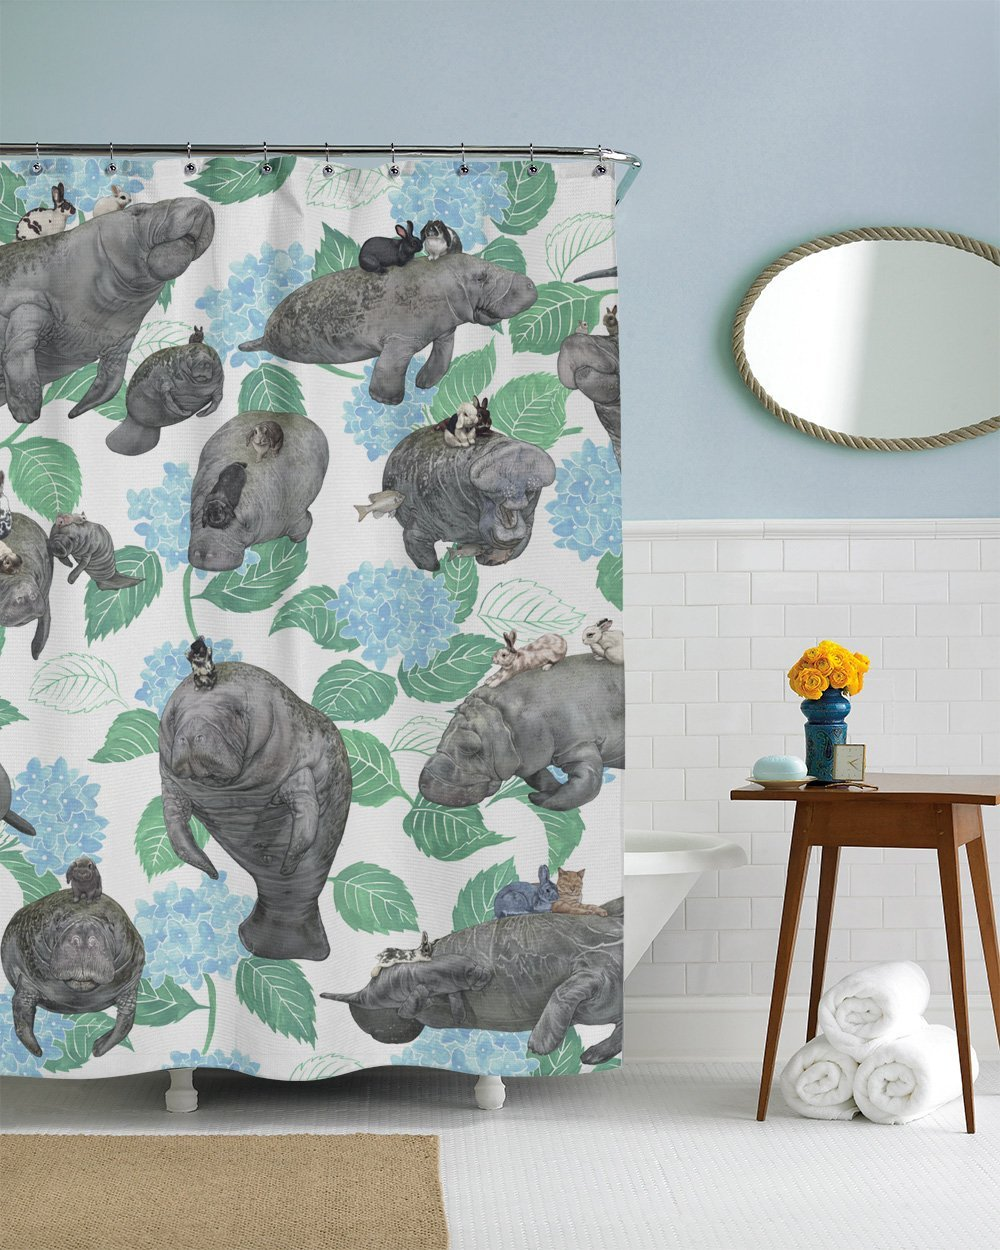 Rabbits Riding Manatees Fabric Shower Curtain Boho Chic Art 75 Inches Long  12 Hooks Included In Shower Curtains From Home U0026 Garden On Aliexpress.com  ...